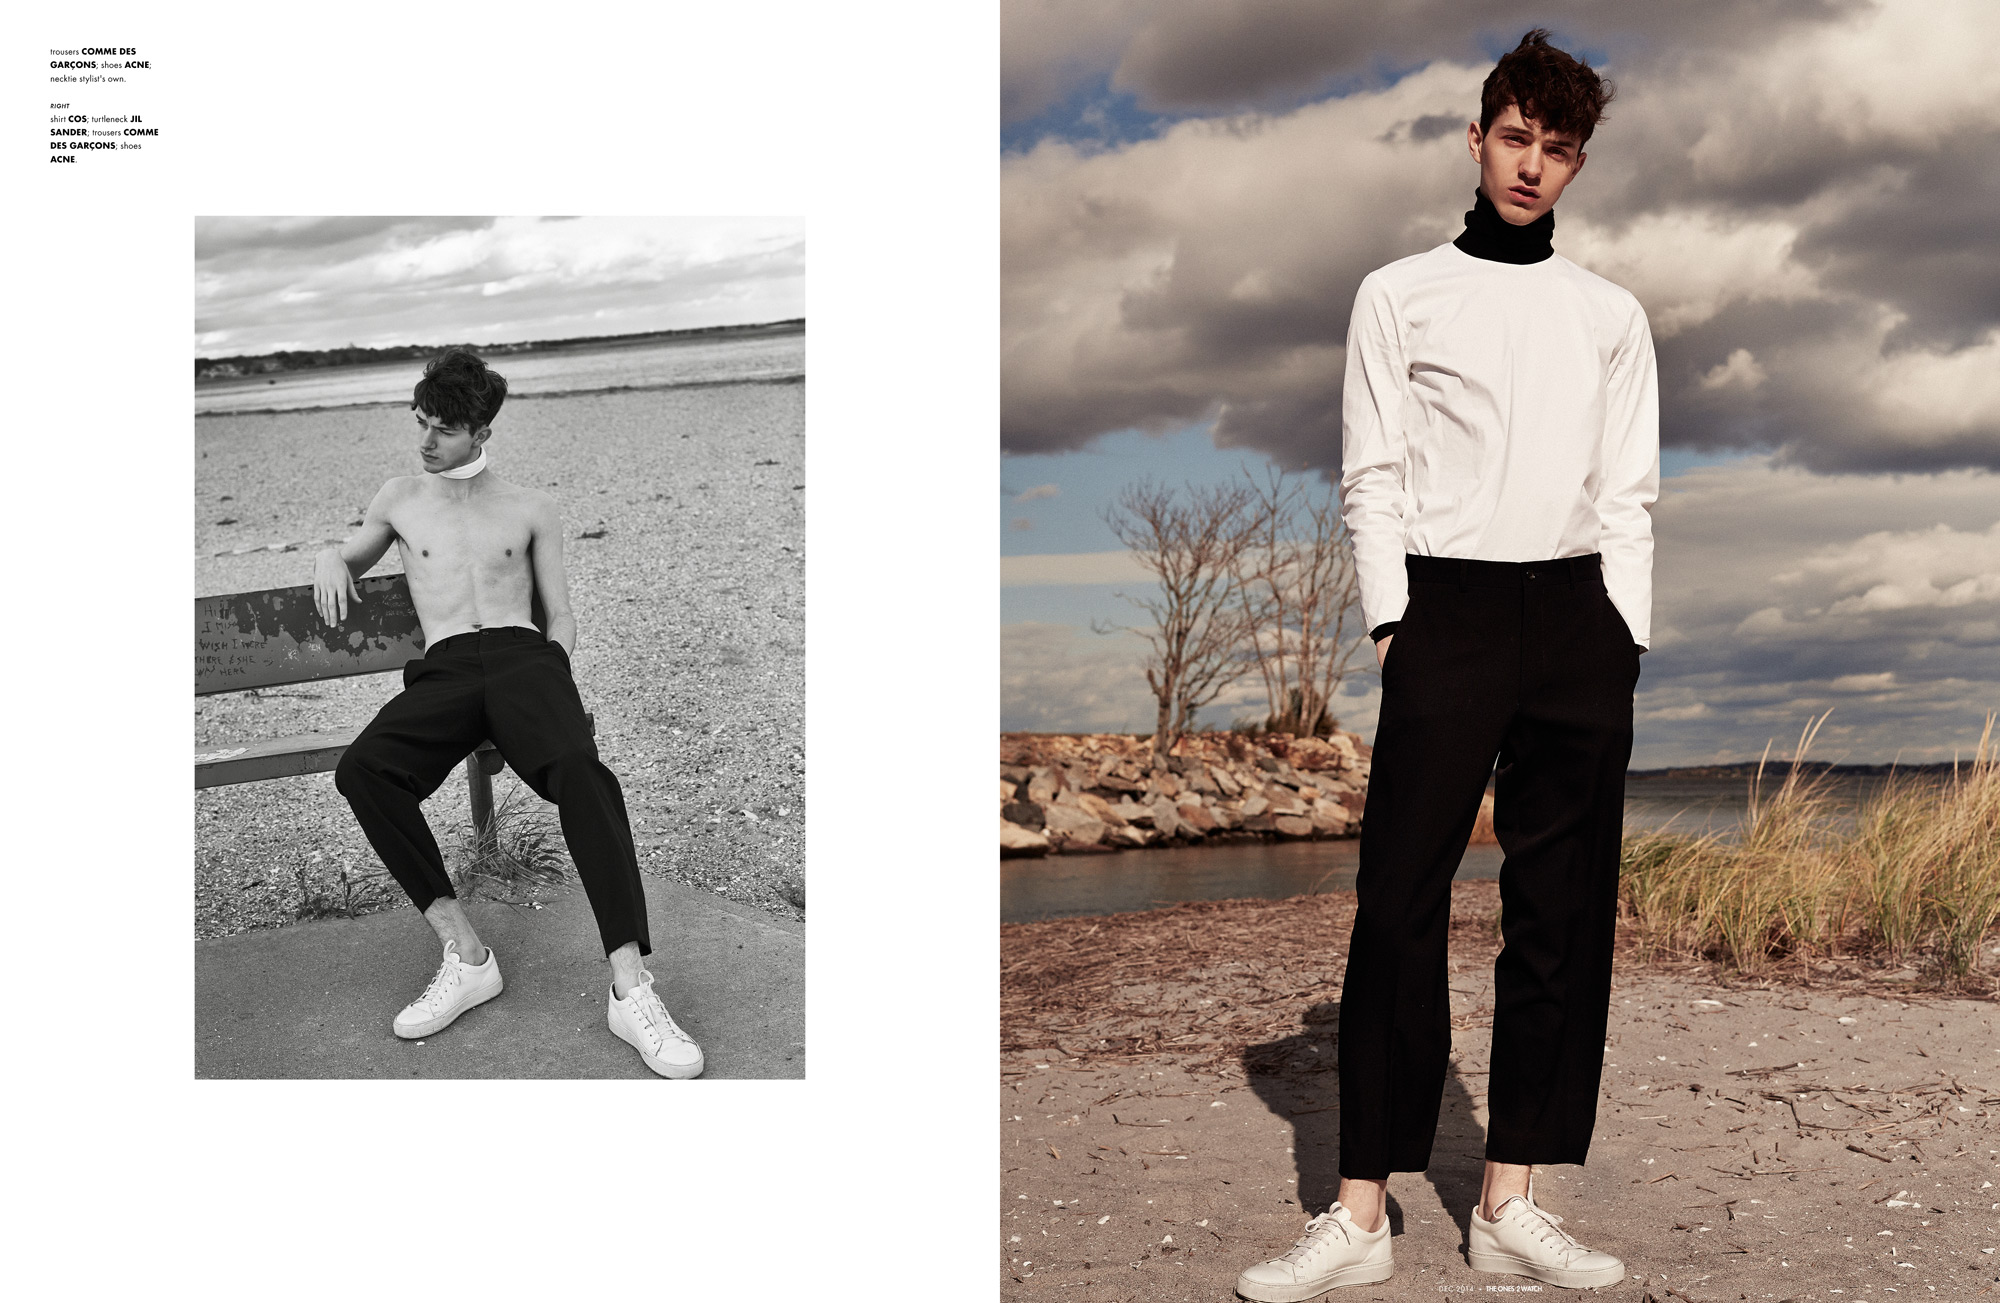 trousers COMME DES GARÇONS; shoes ACNE; necktie stylist's own. right: shirt COS; turtleneck JIL SANDER; trousers COMME DES GARÇONS; shoes ACNE.